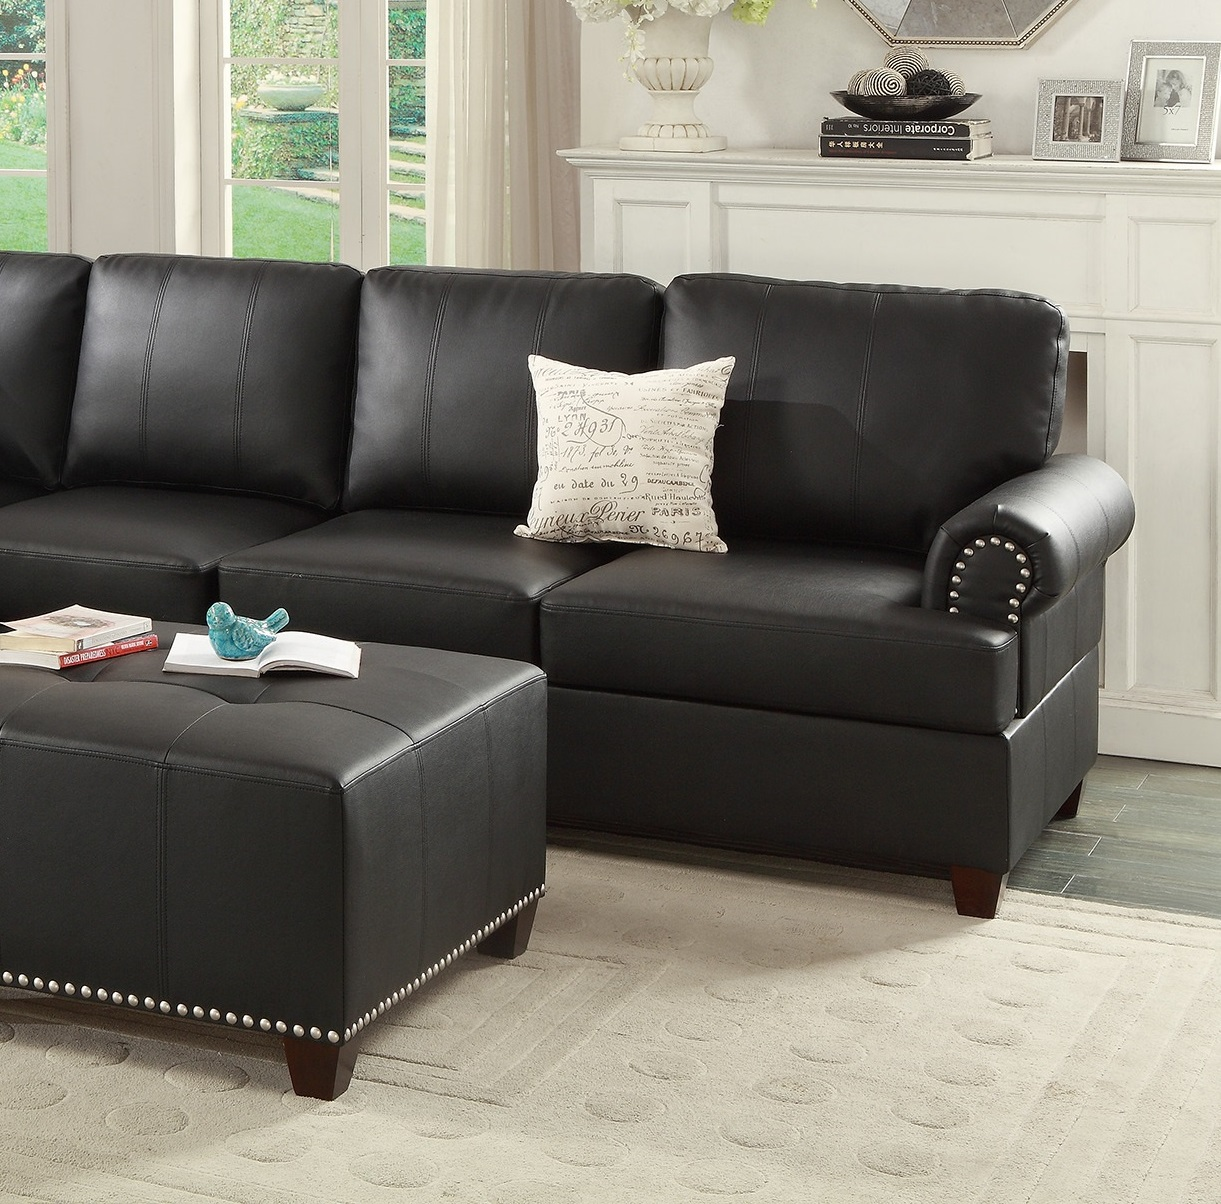 Black Leather Sectional Sofa Loveseat Wedge